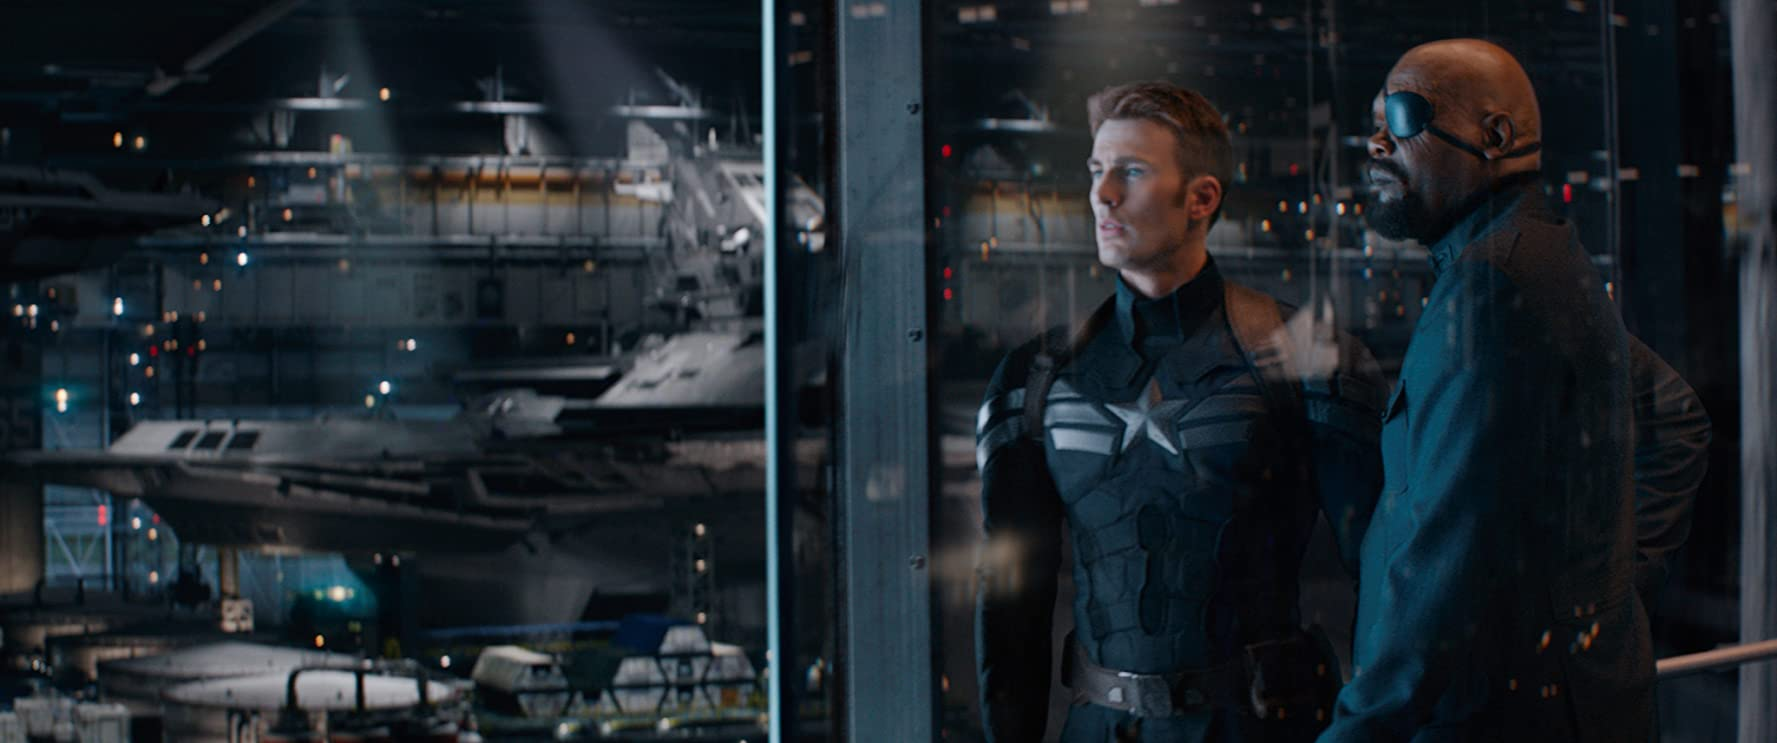 Samuel L. Jackson and Chris Evans in Captain America: The Winter Soldier (2014)